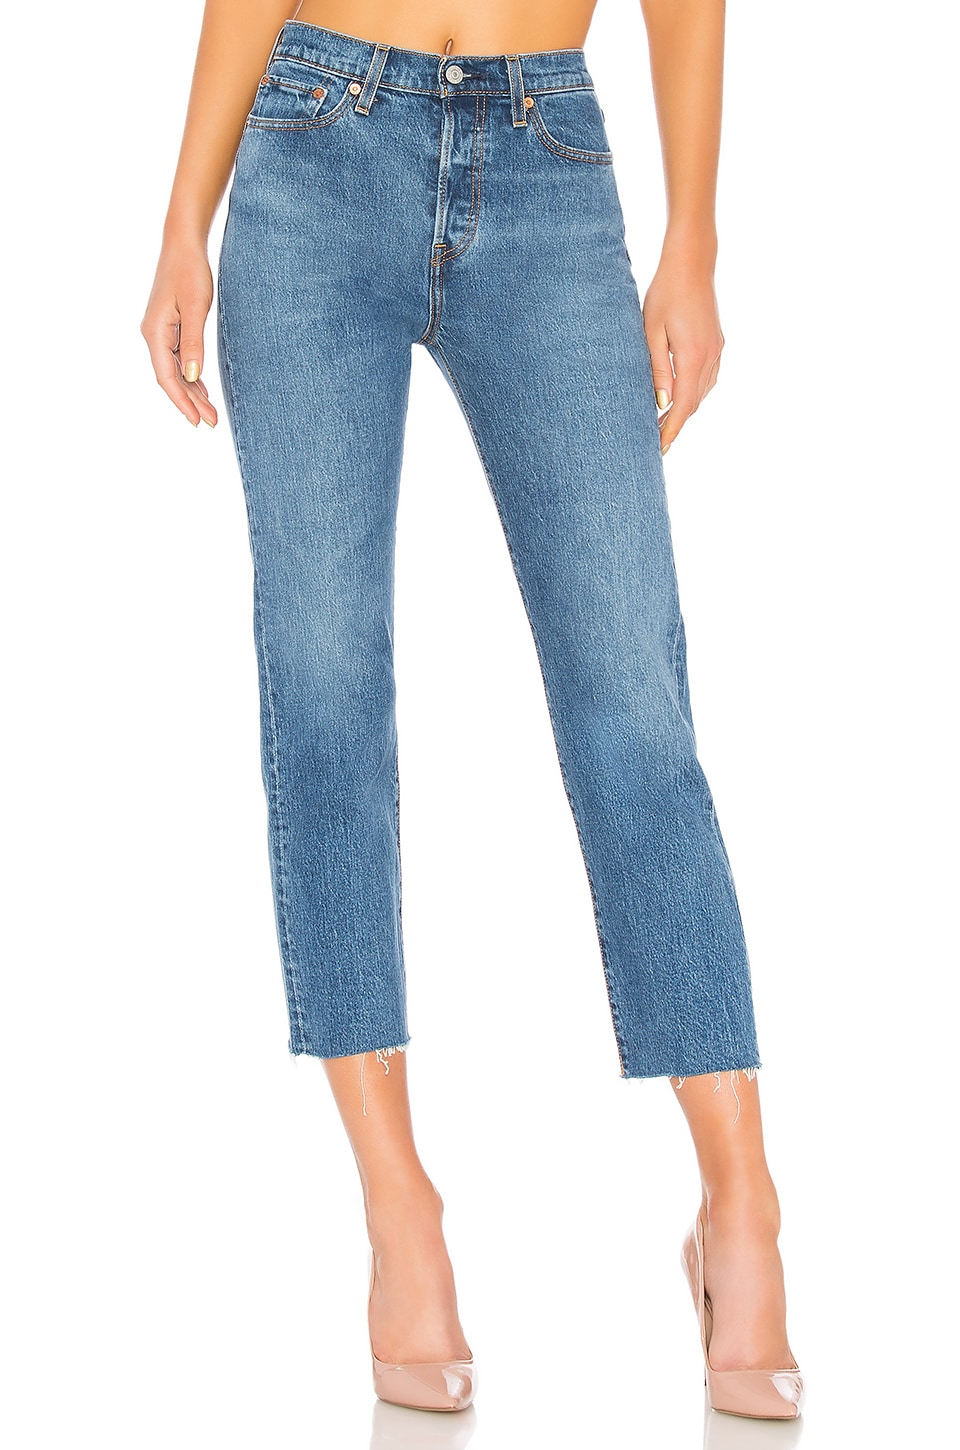 WEDGIE CROP STRAIGHT JEANS IN LOVE TRIANGLE